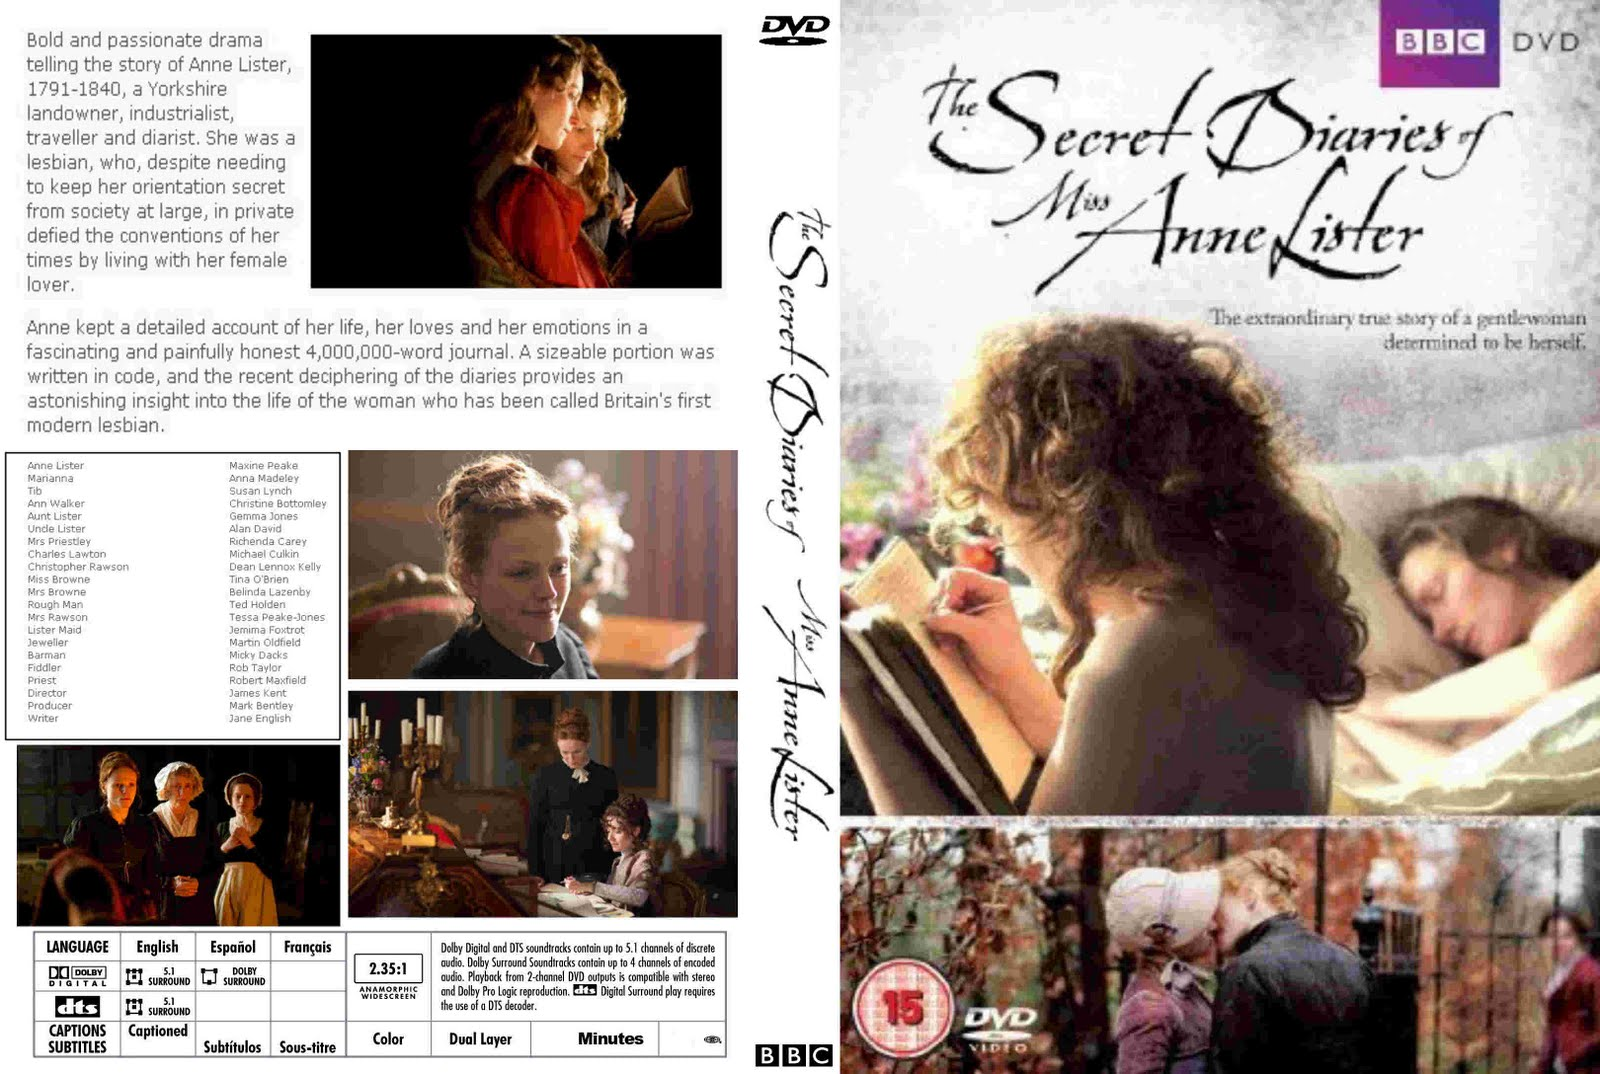 The secret diaries of miss anne lister subtitrare romana